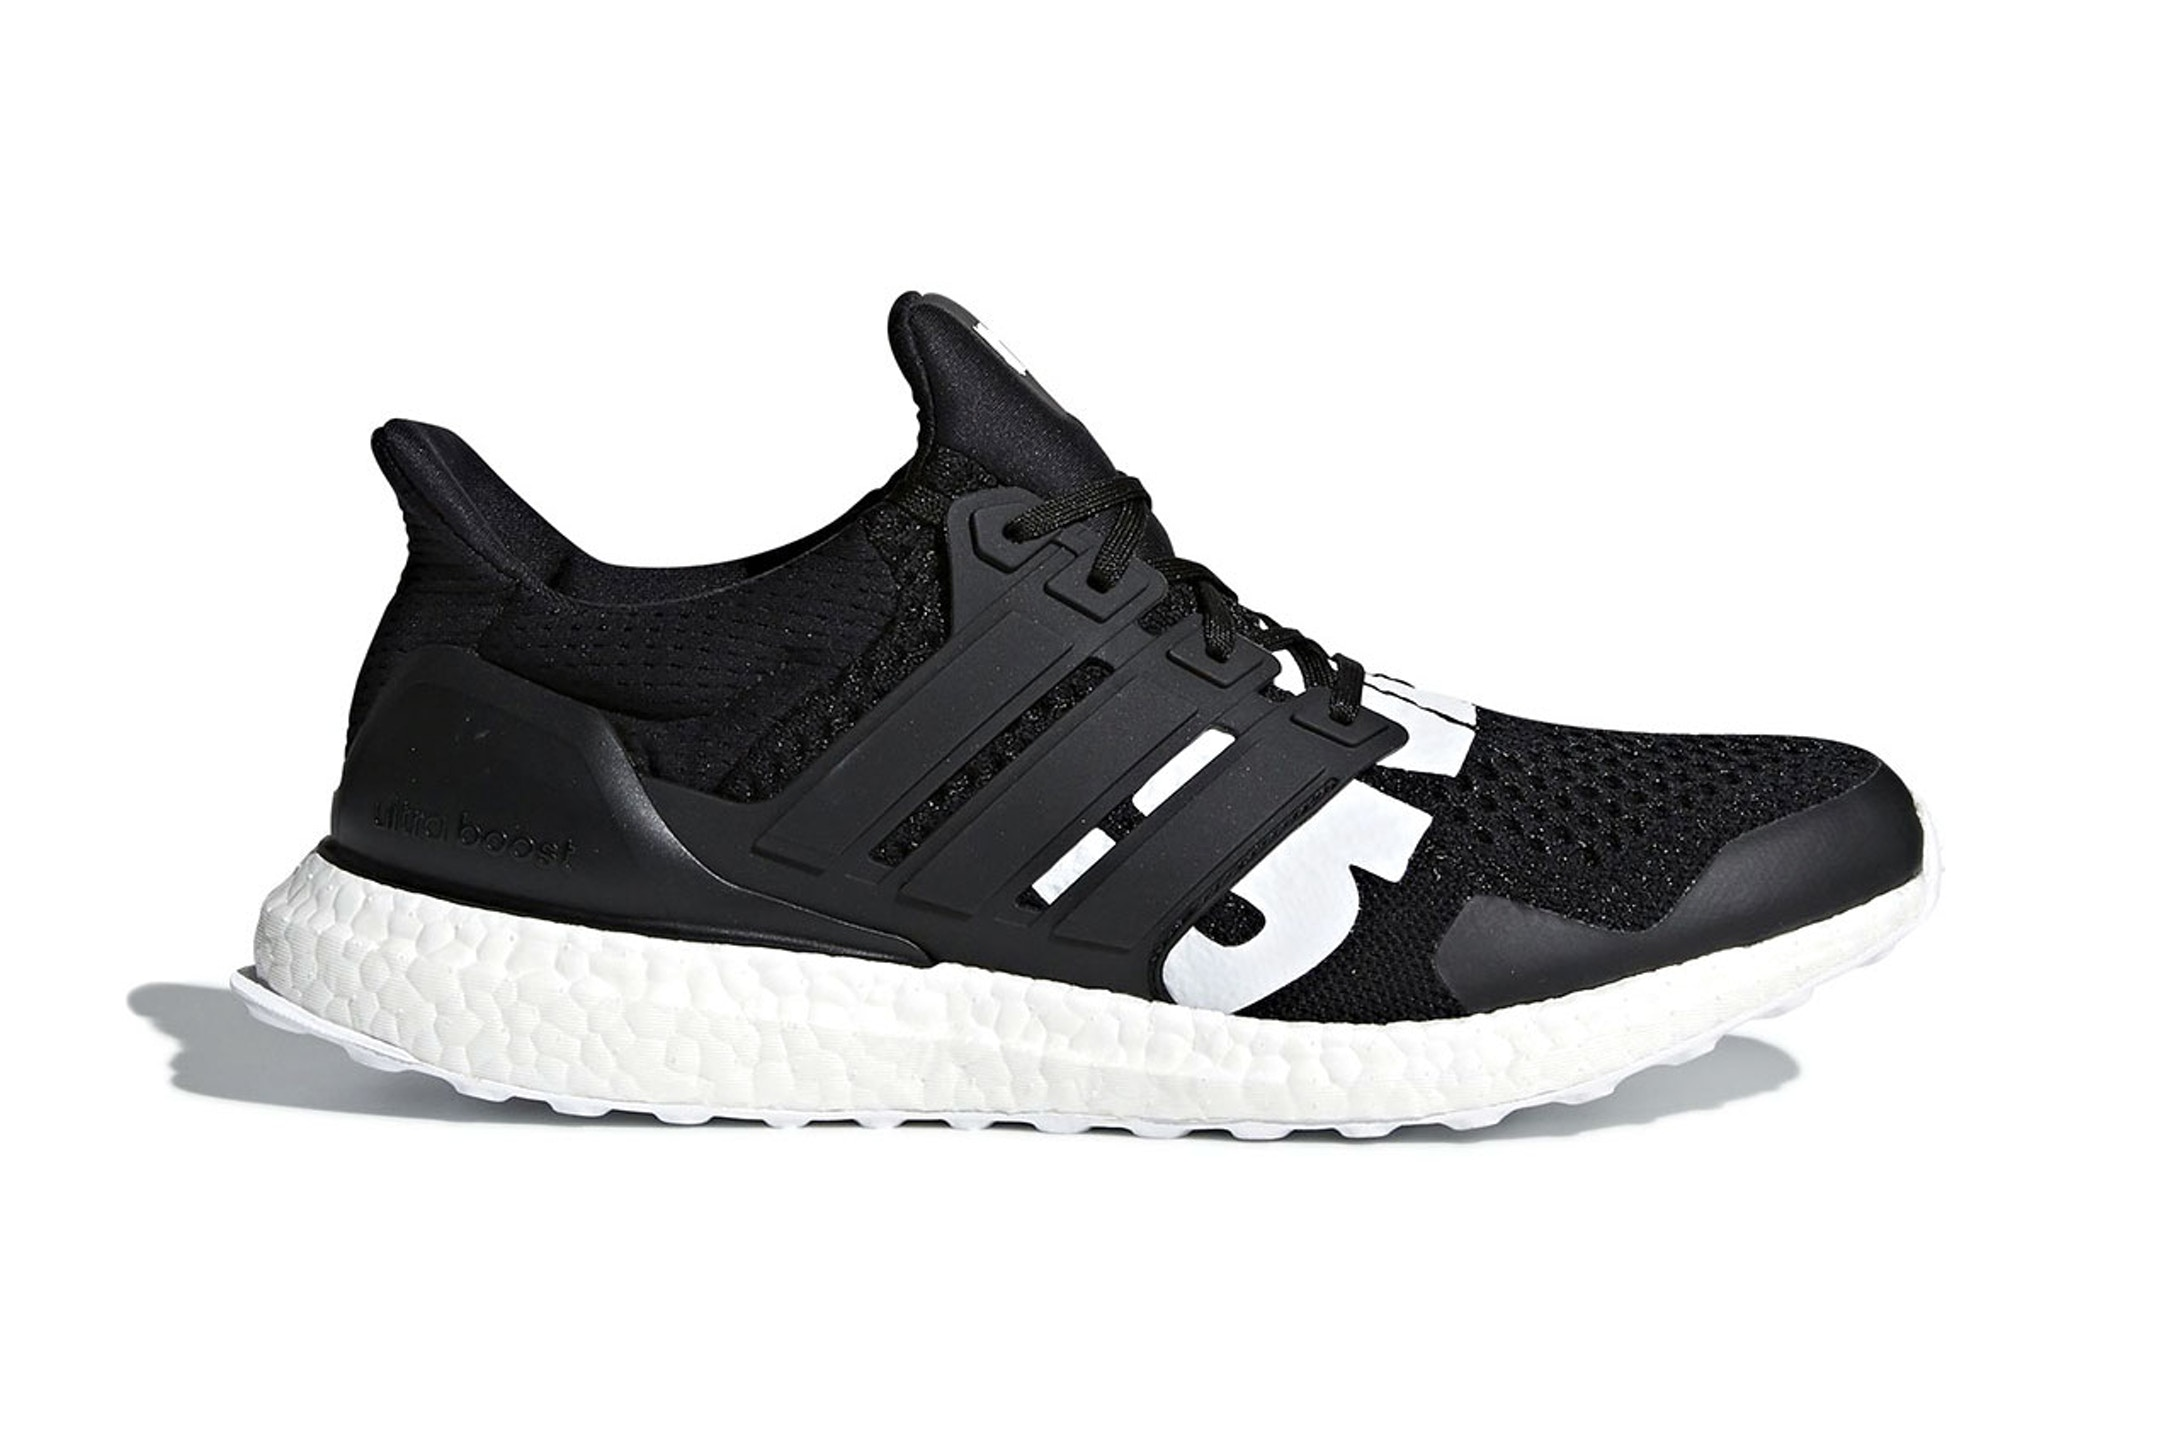 Mode Achat Adidas Consortium X Undefeated Eqt Support Adv